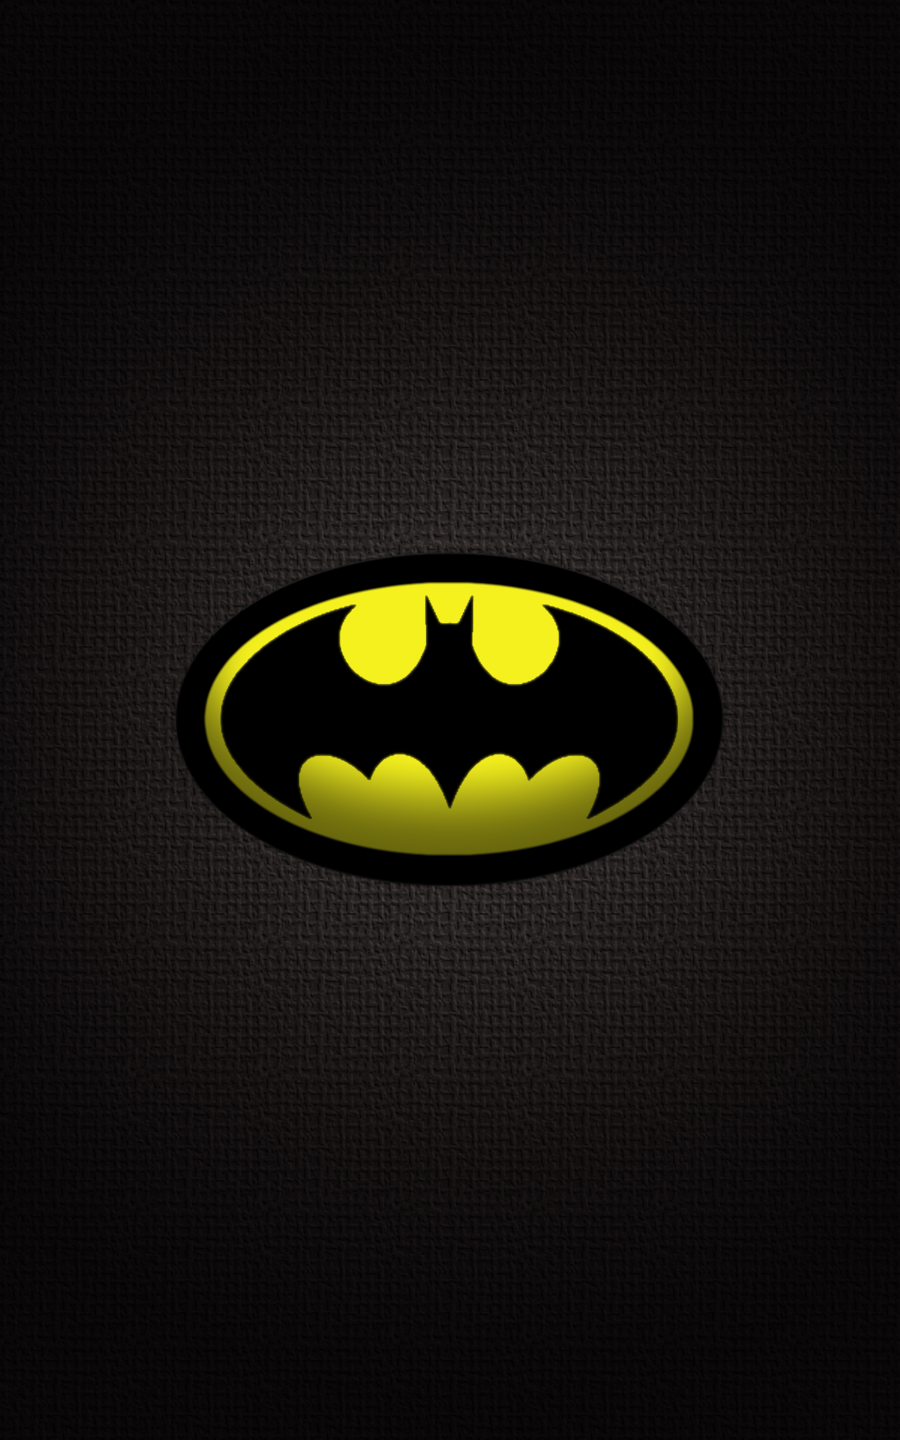 batman wallpaper for android - hd wallpapers images